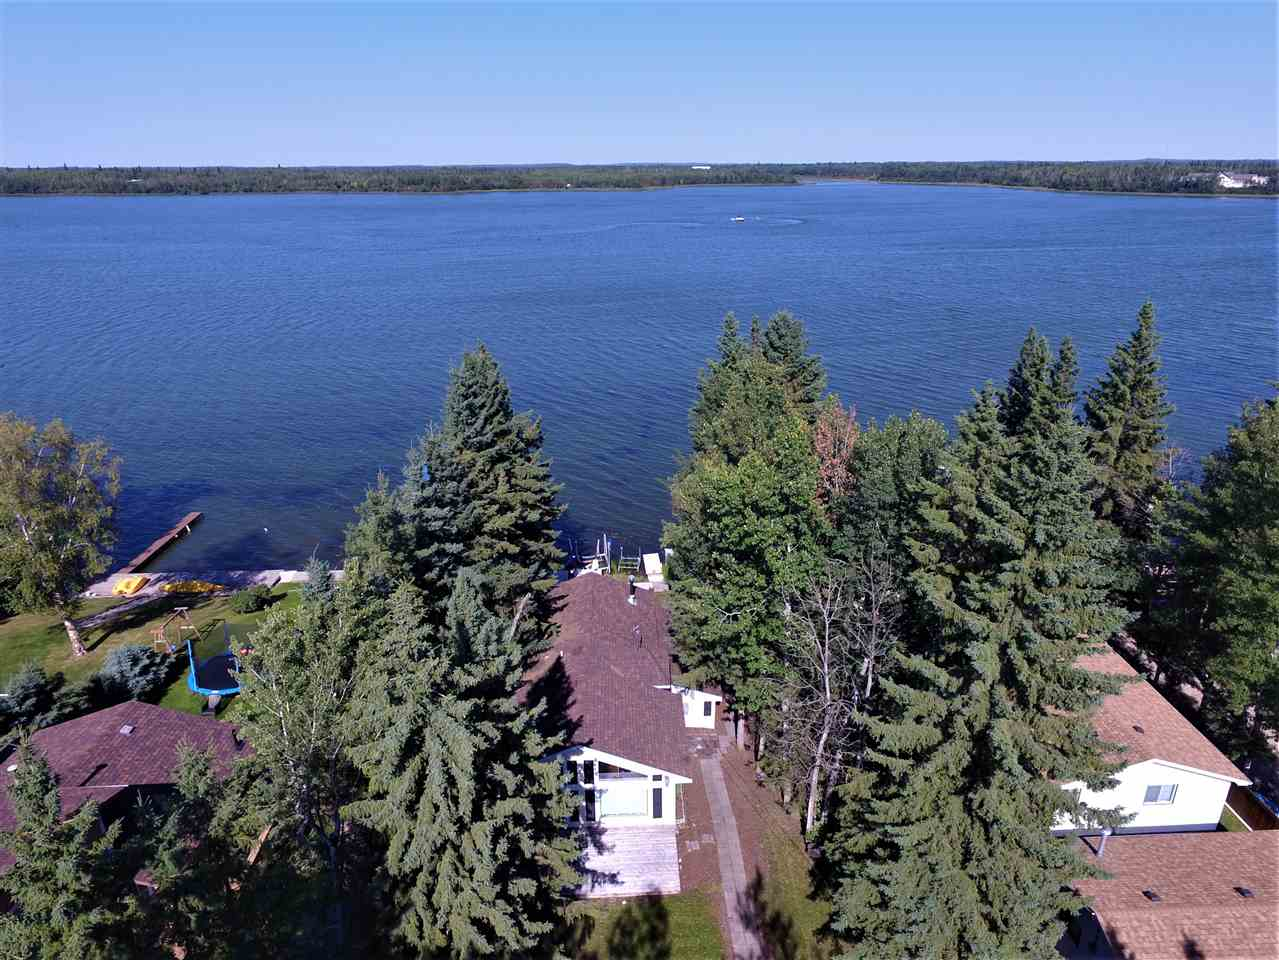 You will Love This Waterfront Property Located in the Summer Village of  Nakamun with 55 ft of Shoreline!! The Large Welcoming Foyer Features Slate Flooring with Plenty of Room to hang your outside gear. Just off the foyer is a Beautiful 4 PC Bath with a Claw foot Tub/Shower. The Laundry Room & Cabinets share the Bathroom Space. There are 2 Great Sized Bedrooms that each accommodate Bunk beds plus a Double bed. Large  Windows on the Front of the Cabin Brighten both Bedrooms. To the Right of the Cabin through the Gorgeous Glass Door is a Spectacular Open Concept  Kitchen/Dining and Living Area.This Home is Beautifully Designed with Open Beams and Vaulted Ceilings. The White Wainscotting throughout brings out the Character of Beach Living. You will Enjoy Cooking with High End Appliances and Prepping for the BBQ on the Large Island. Waterfront Views are Breathtaking from Large Living Room Window and even More Enjoyable on the Back Deck. Wake up in your Spacious Master Bedroom with the same Amazing Views!